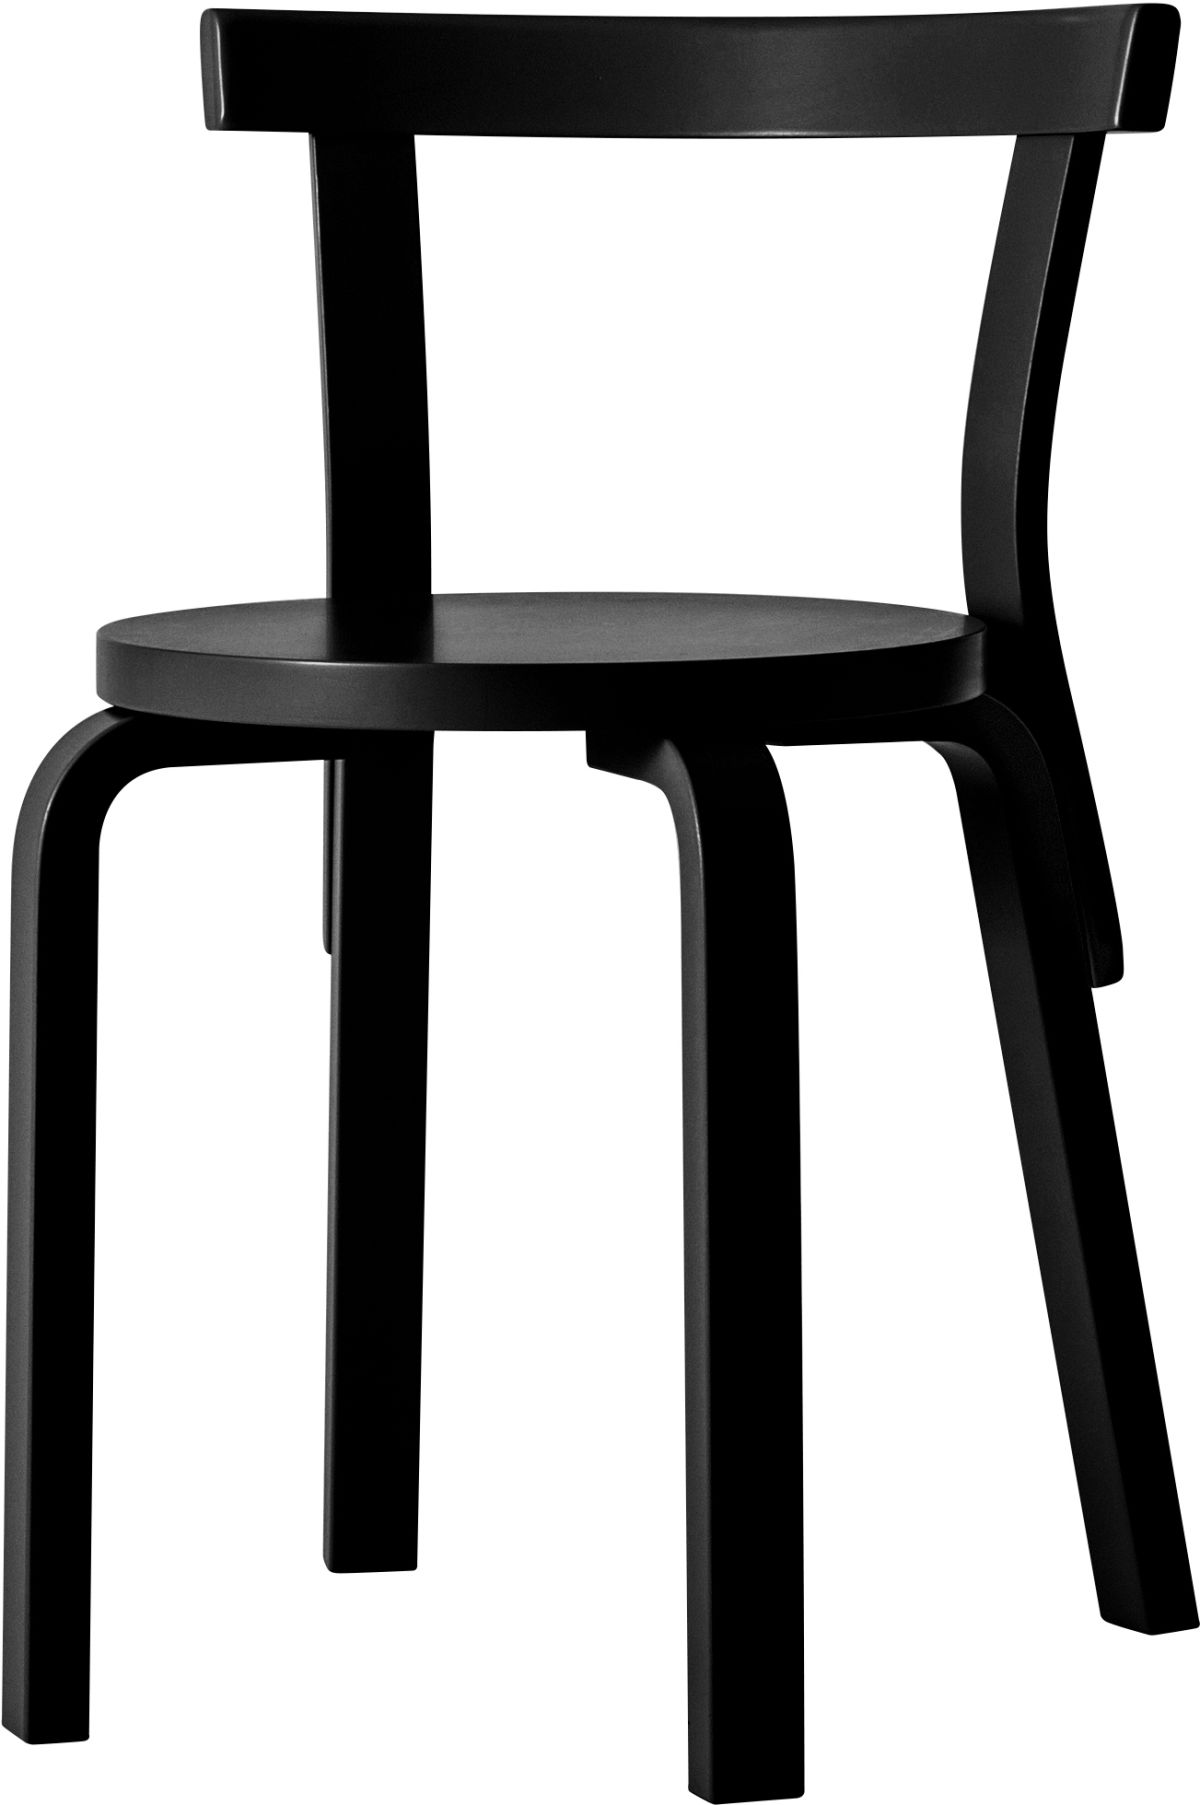 Chair 68 black lacquer